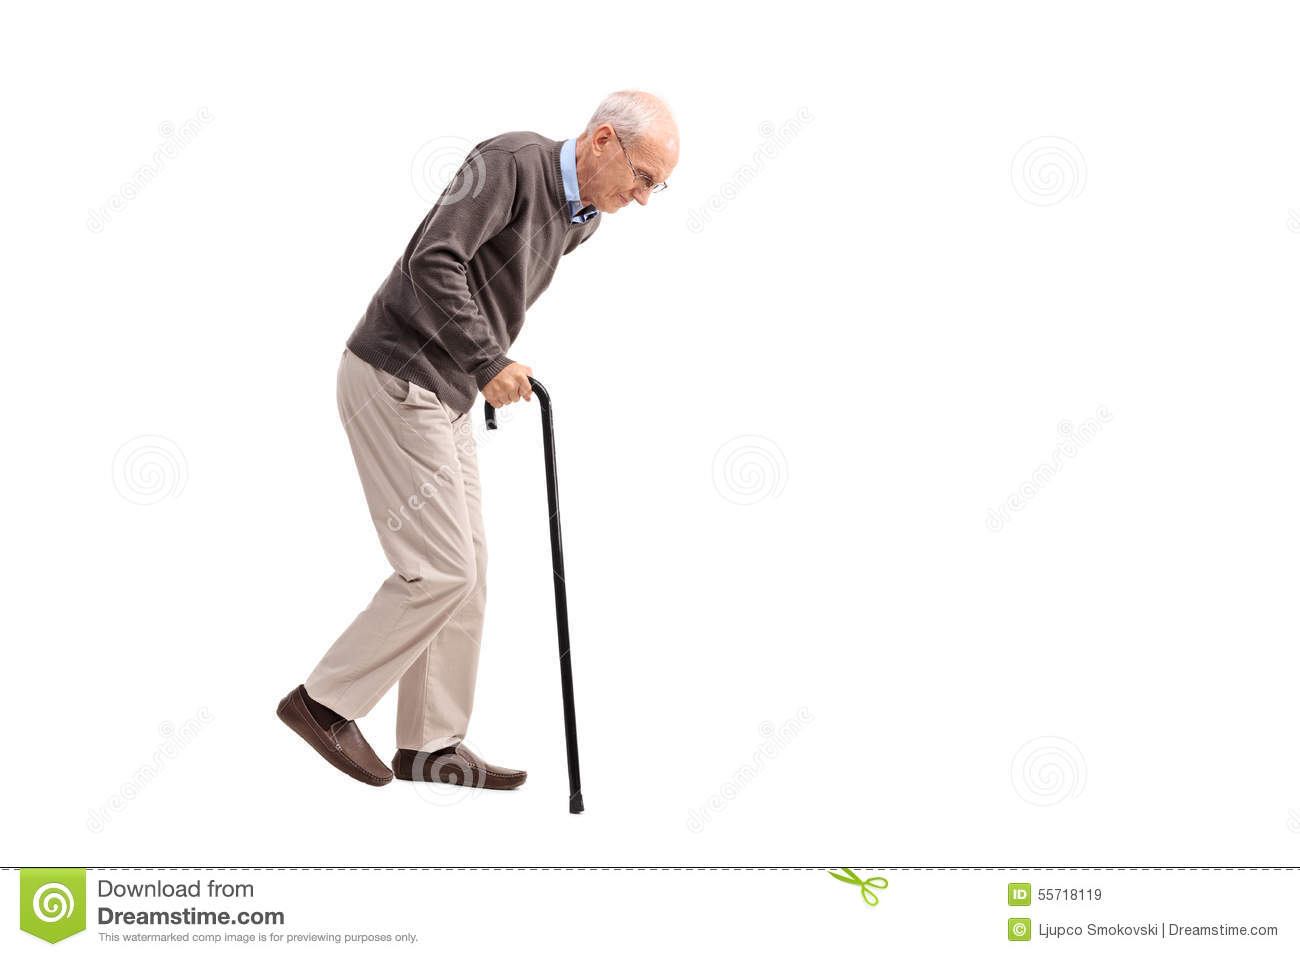 elderly man walking - photo #10